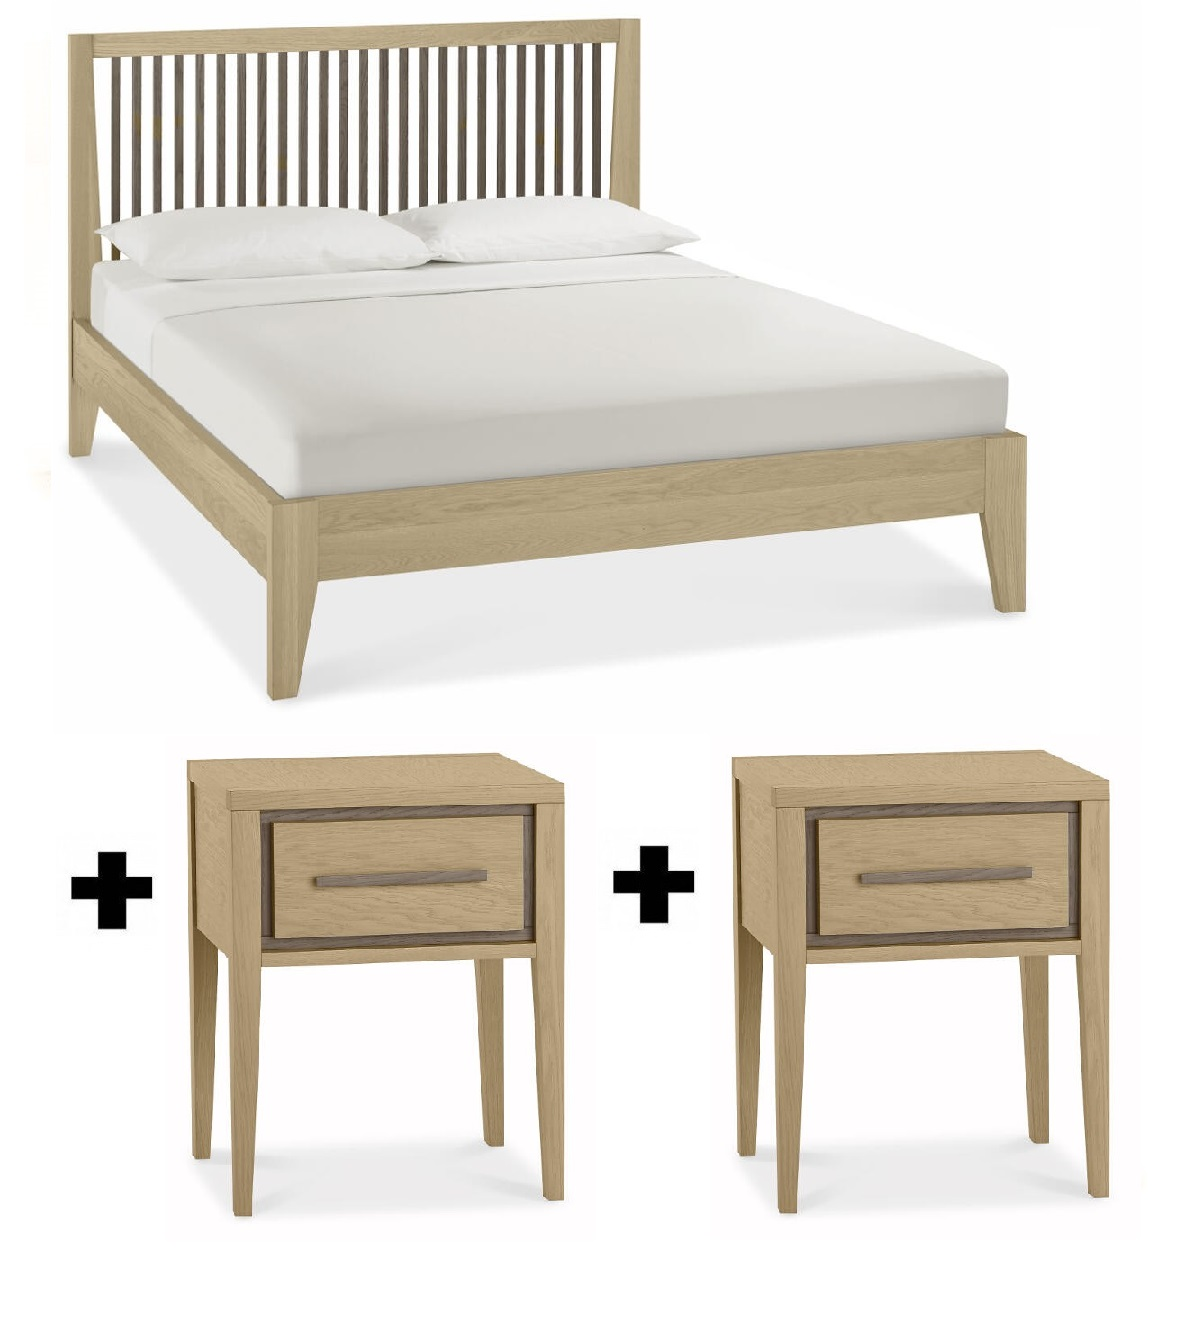 Lombardy Bedframe Plus 2 Bedsides - Bundle Deal